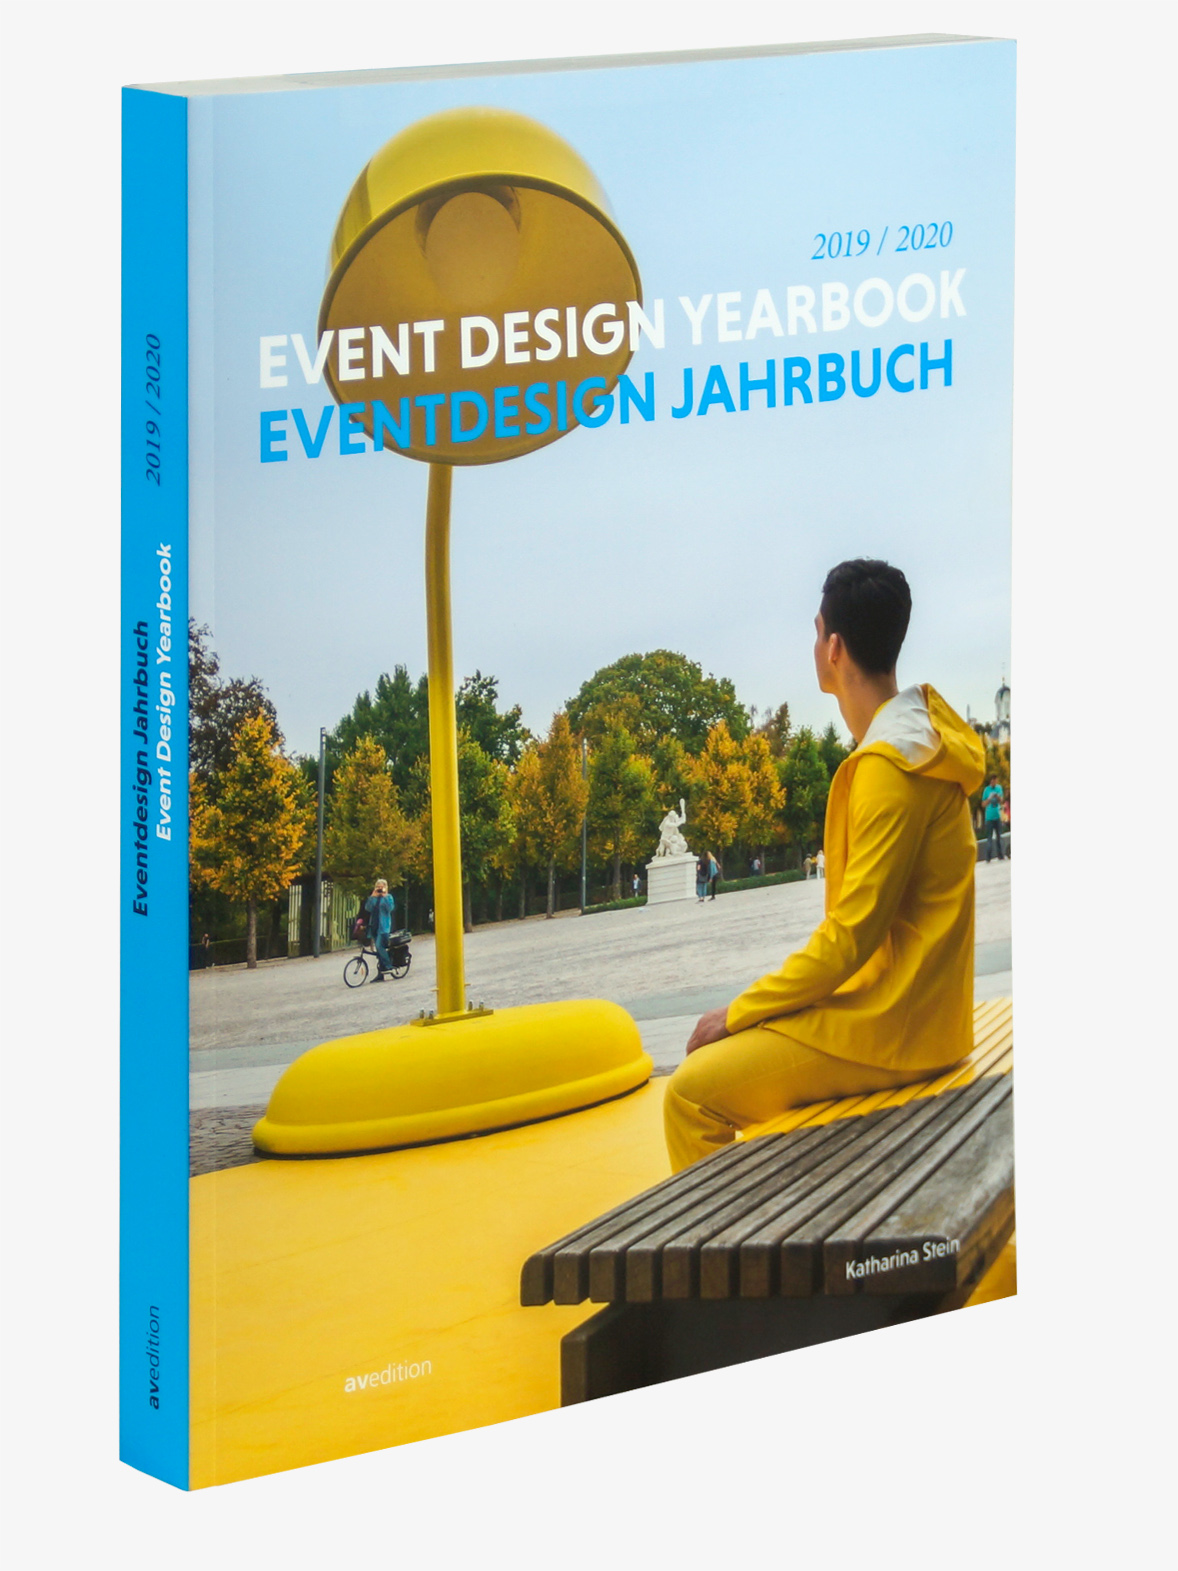 Event Design Yearbook 2019 / 2020